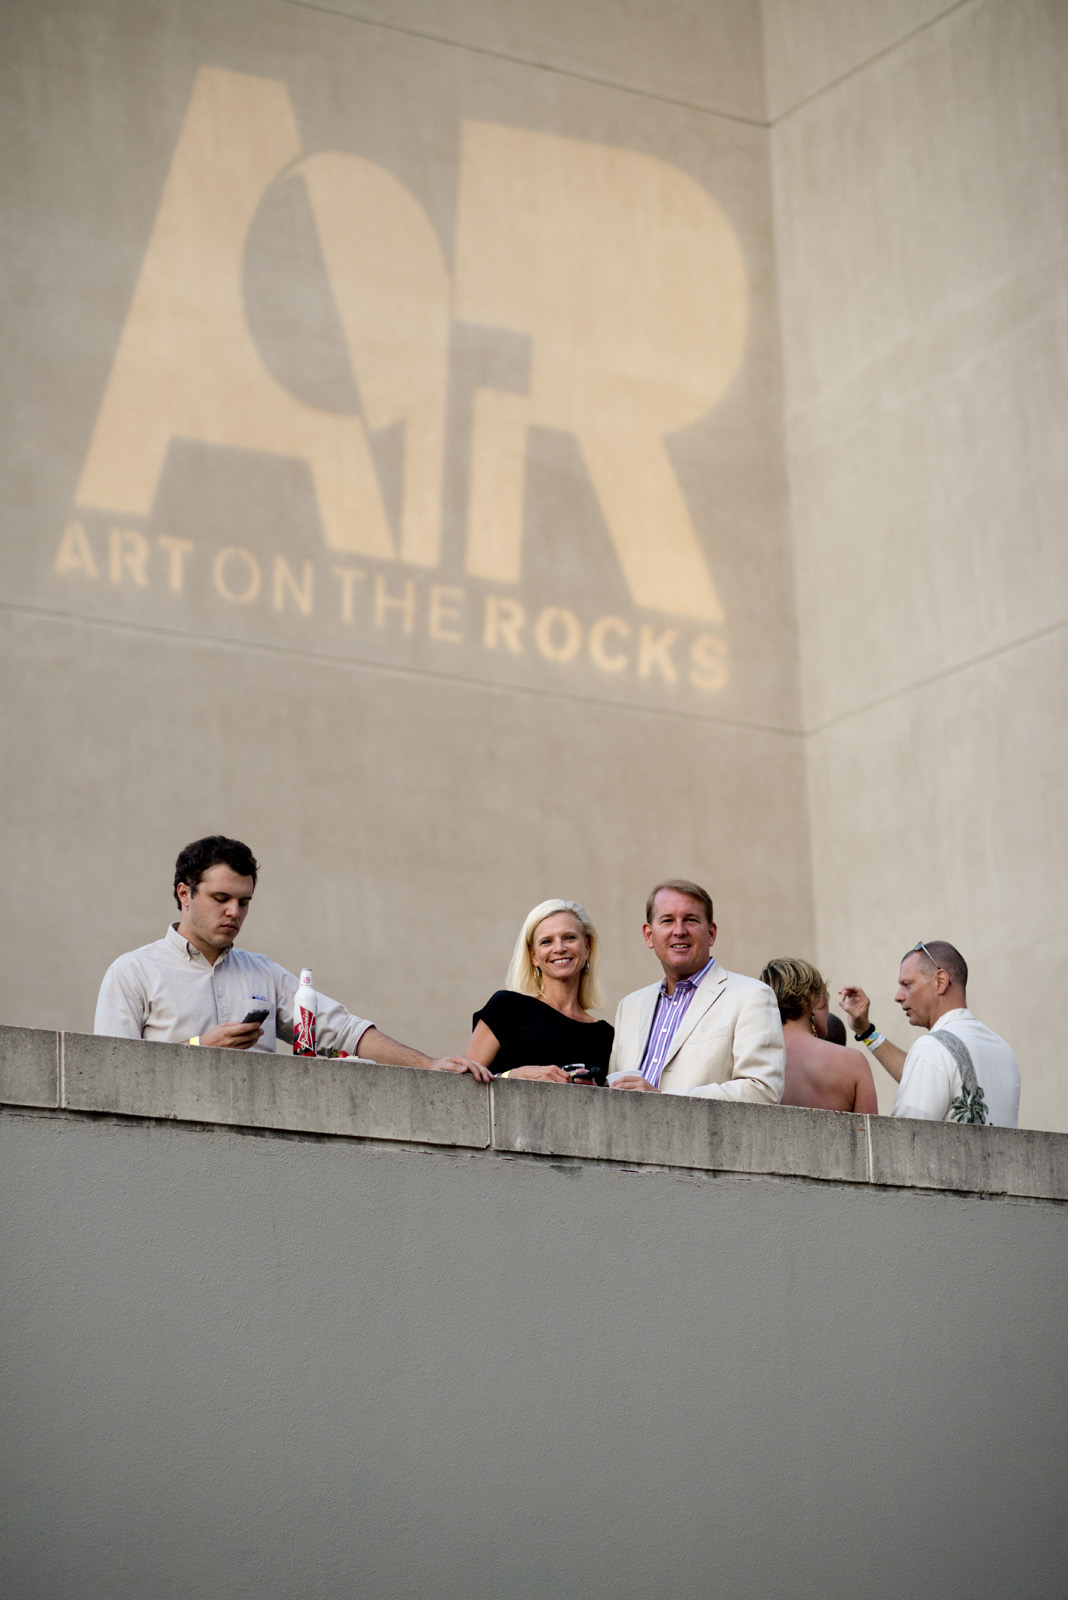 Highlights from Art On The Rocks 2013